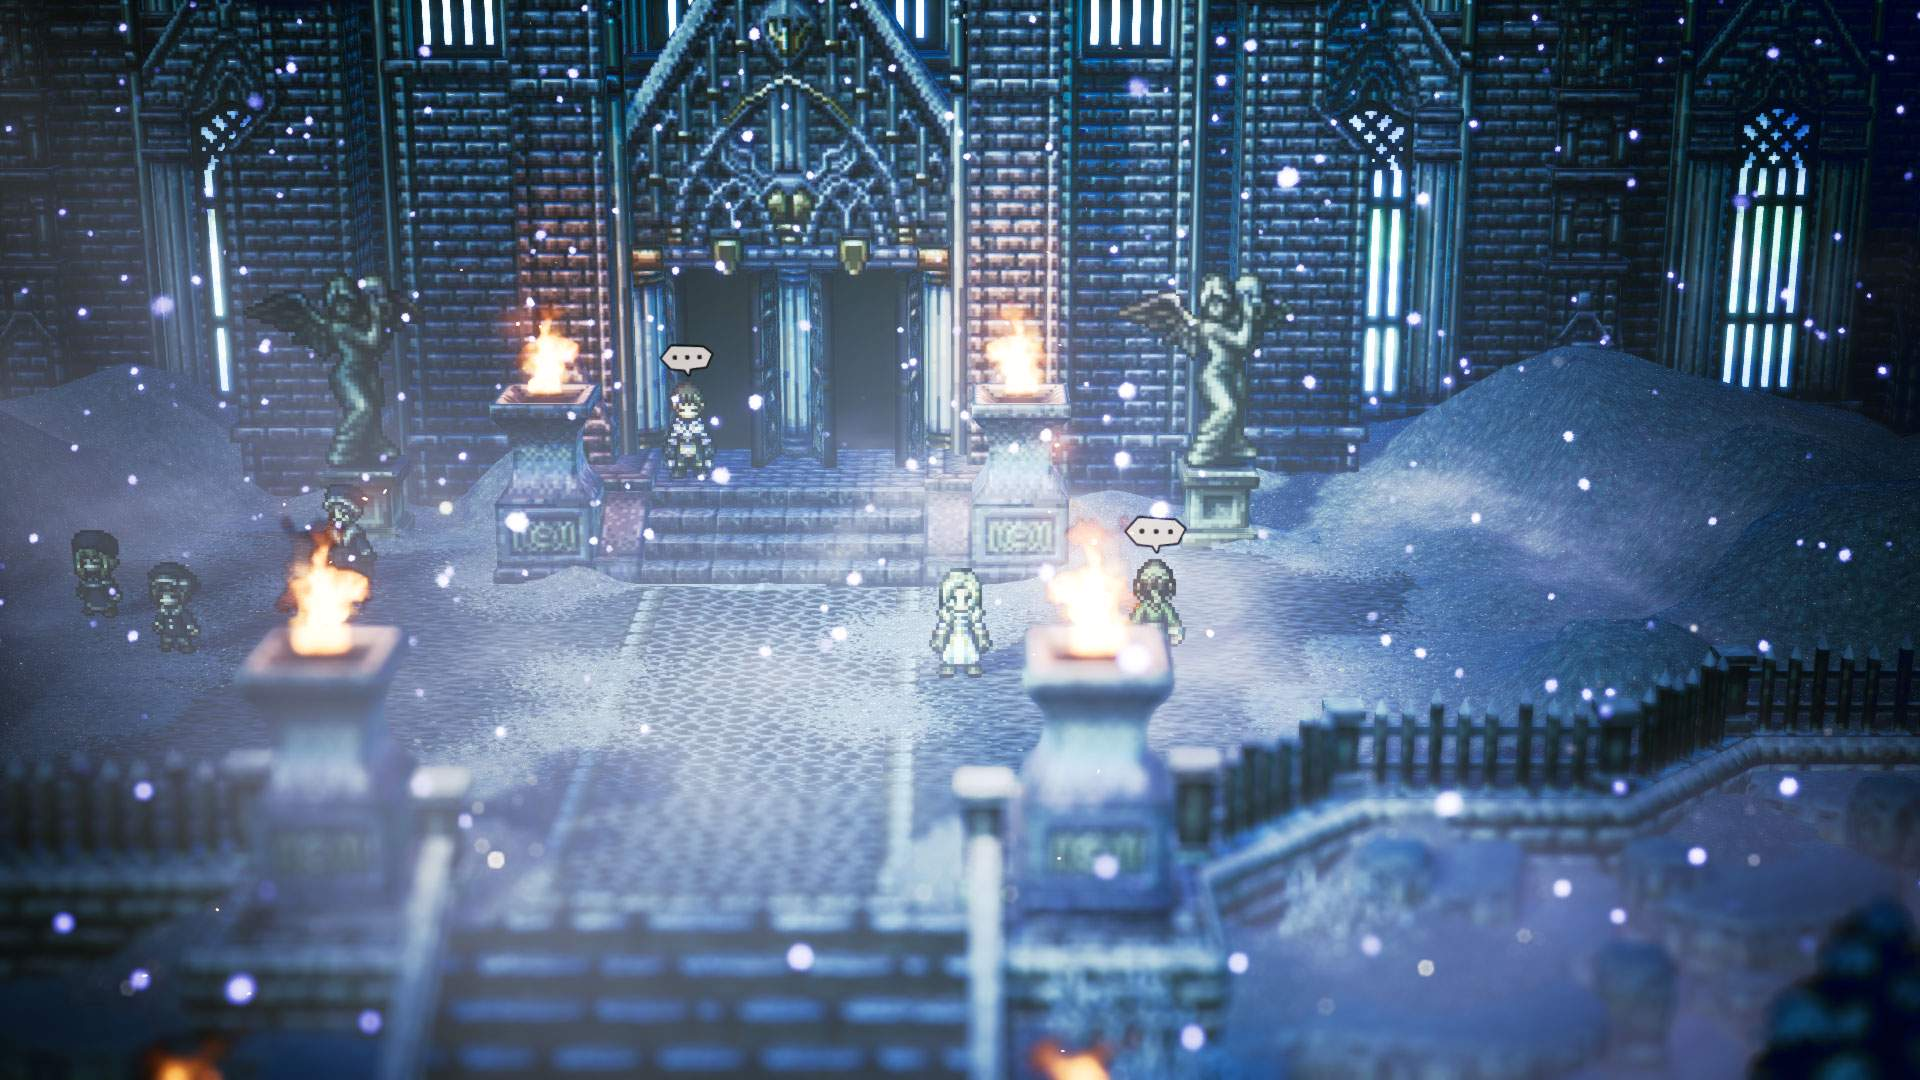 Gameplay screenshot showing Ophilia standing outside a large manor in town as it snows heavily.